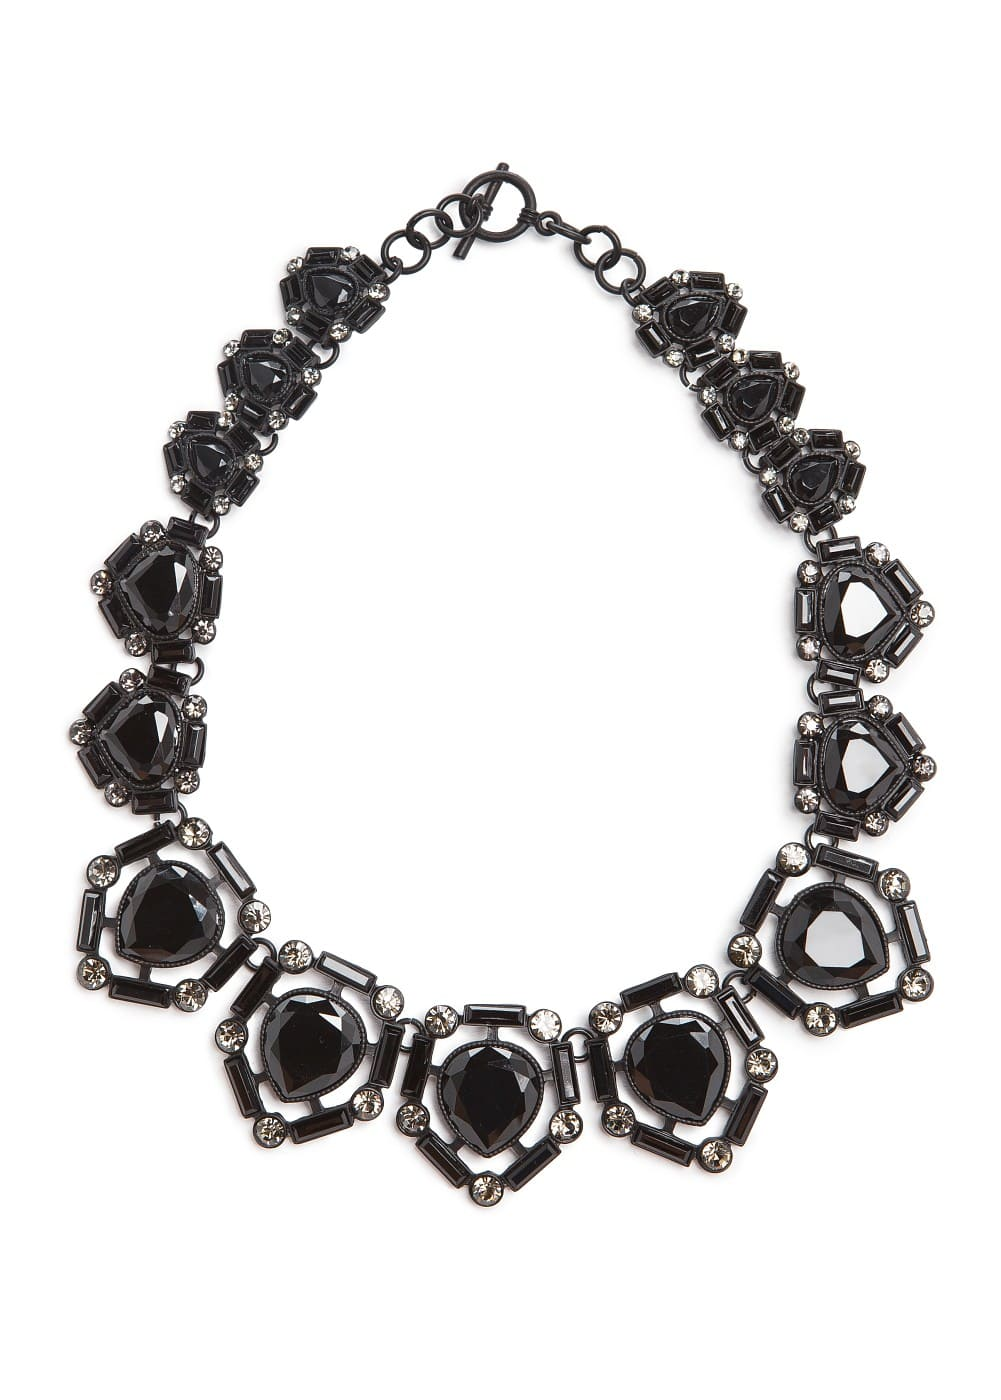 Faceted crystal choker